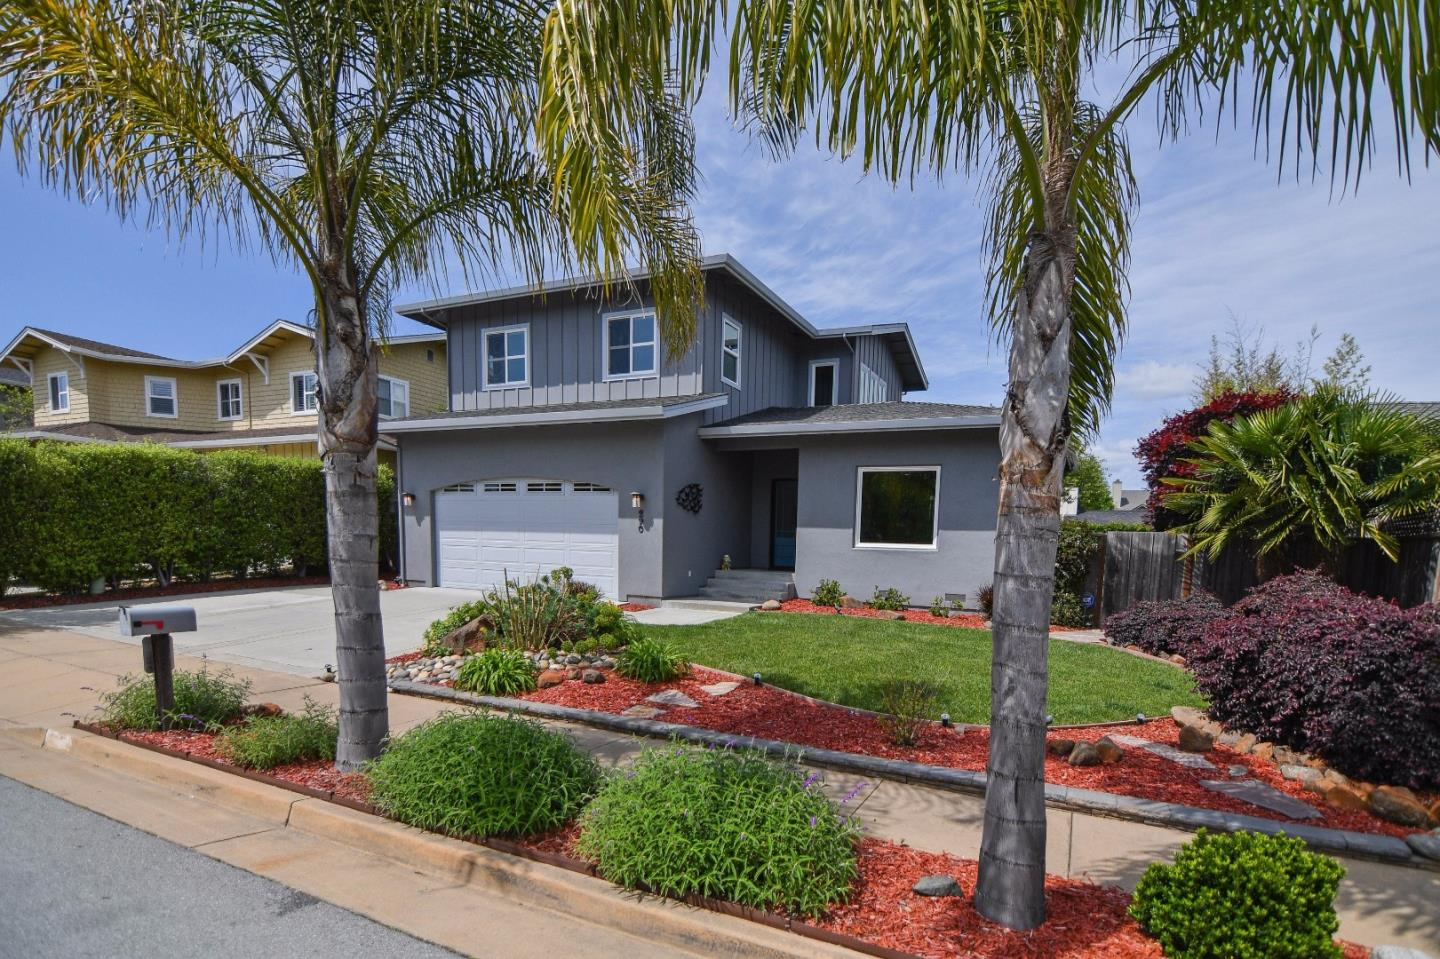 Additional photo for property listing at 290 Pinewood St  SANTA CRUZ, CALIFORNIA 95062